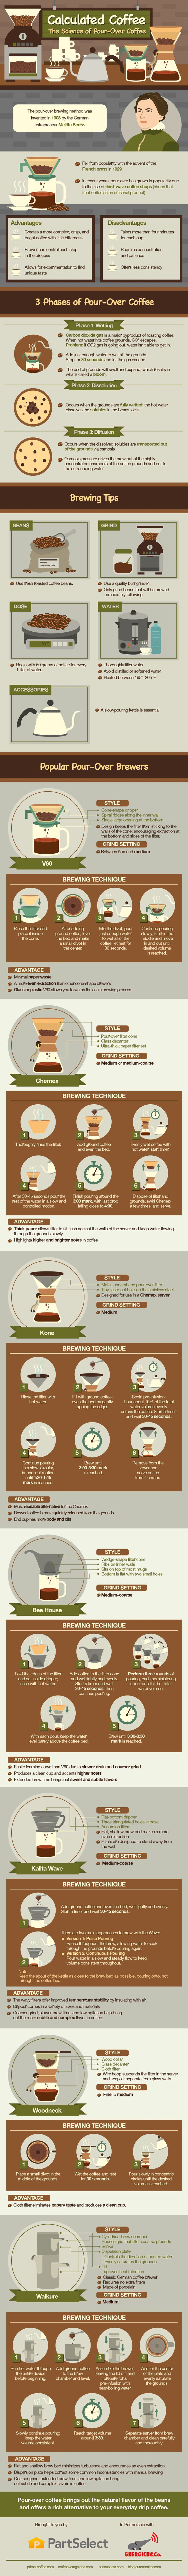 How To Make The Perfect Cup Of Coffee Using The Pour-Over Method [Infographic] | Daily Infographic